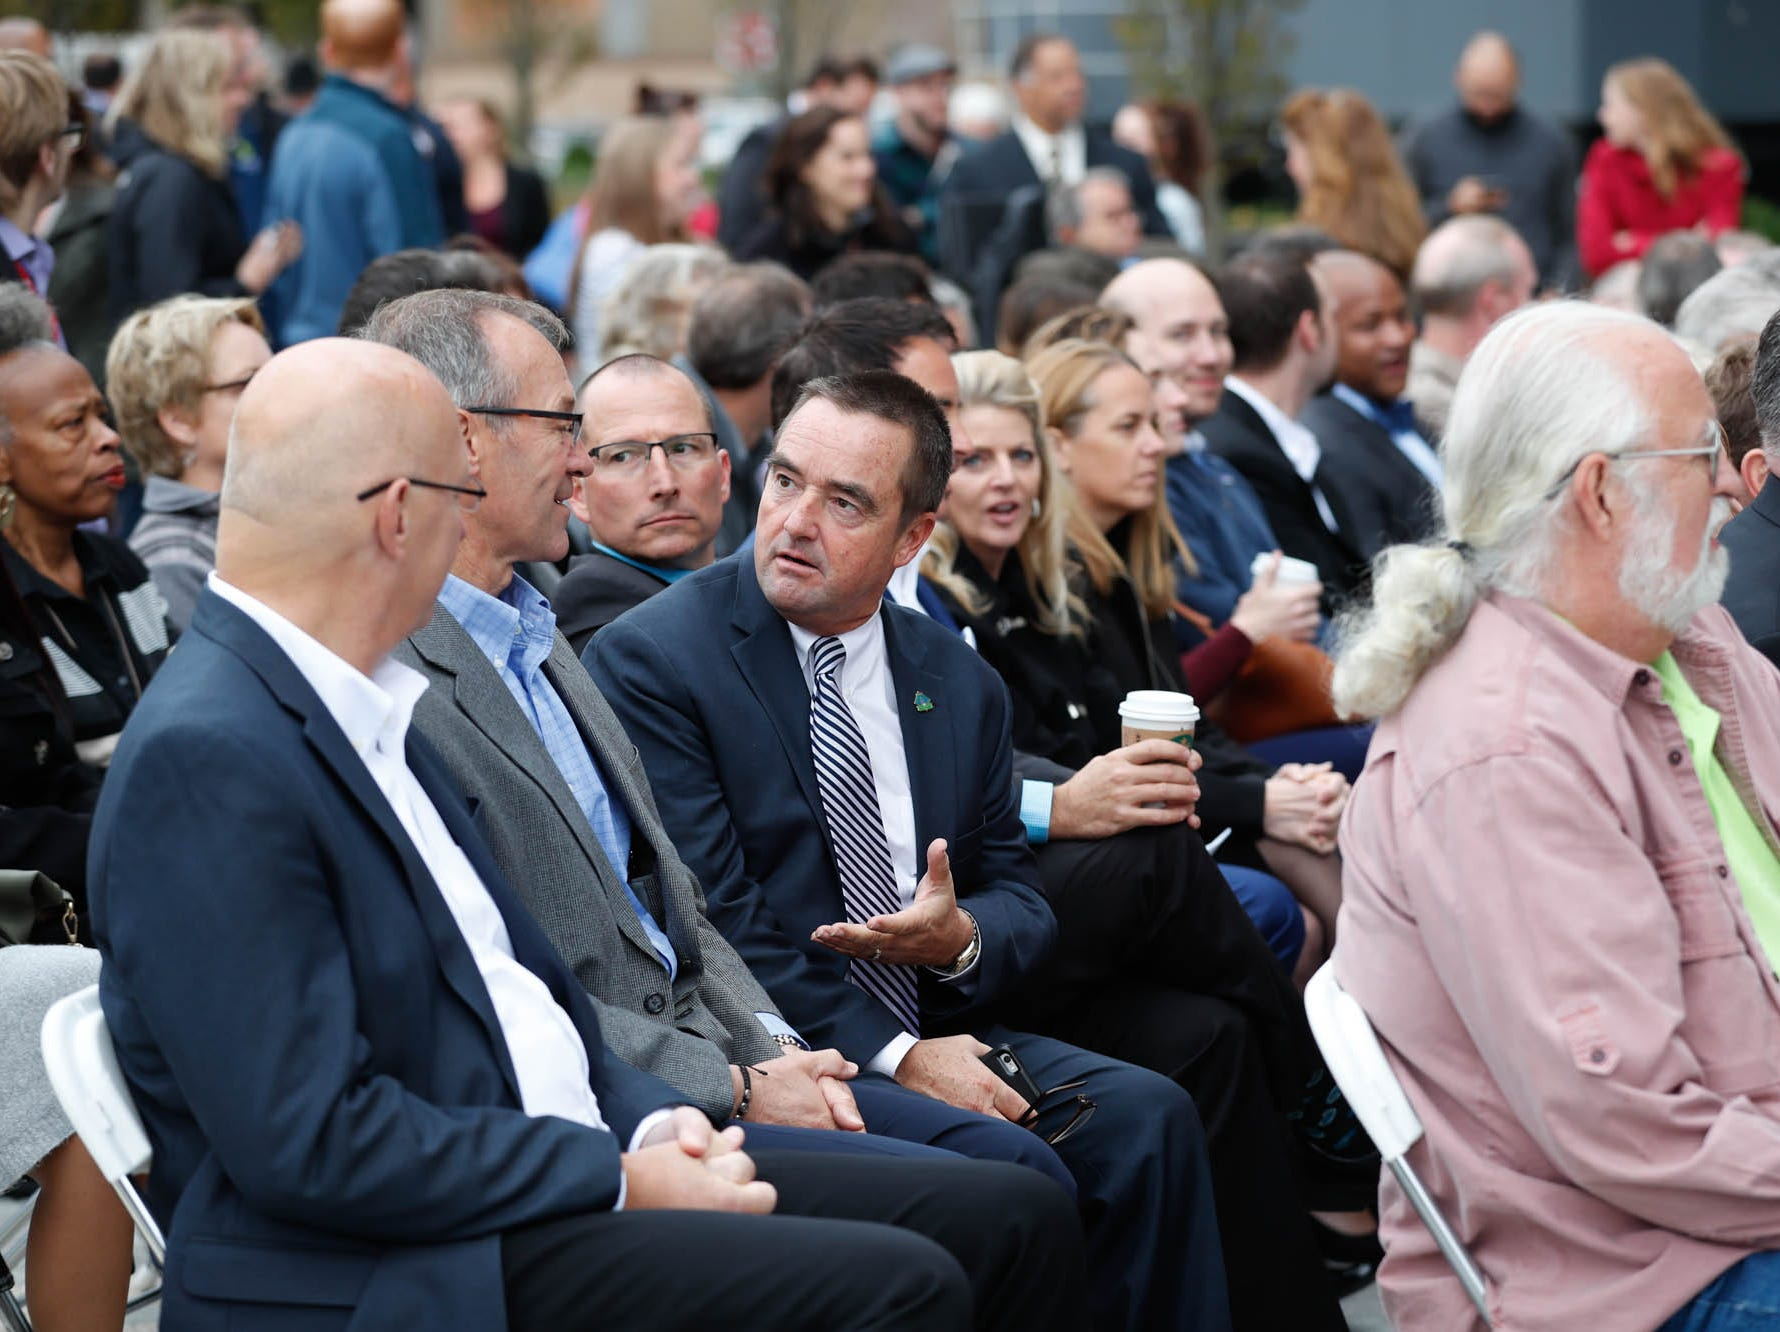 Guests attend the reopening and dedication of Richard G. Lugar Plaza at the City-County Building in Indianapolis on Thursday, Oct. 11, 2018.